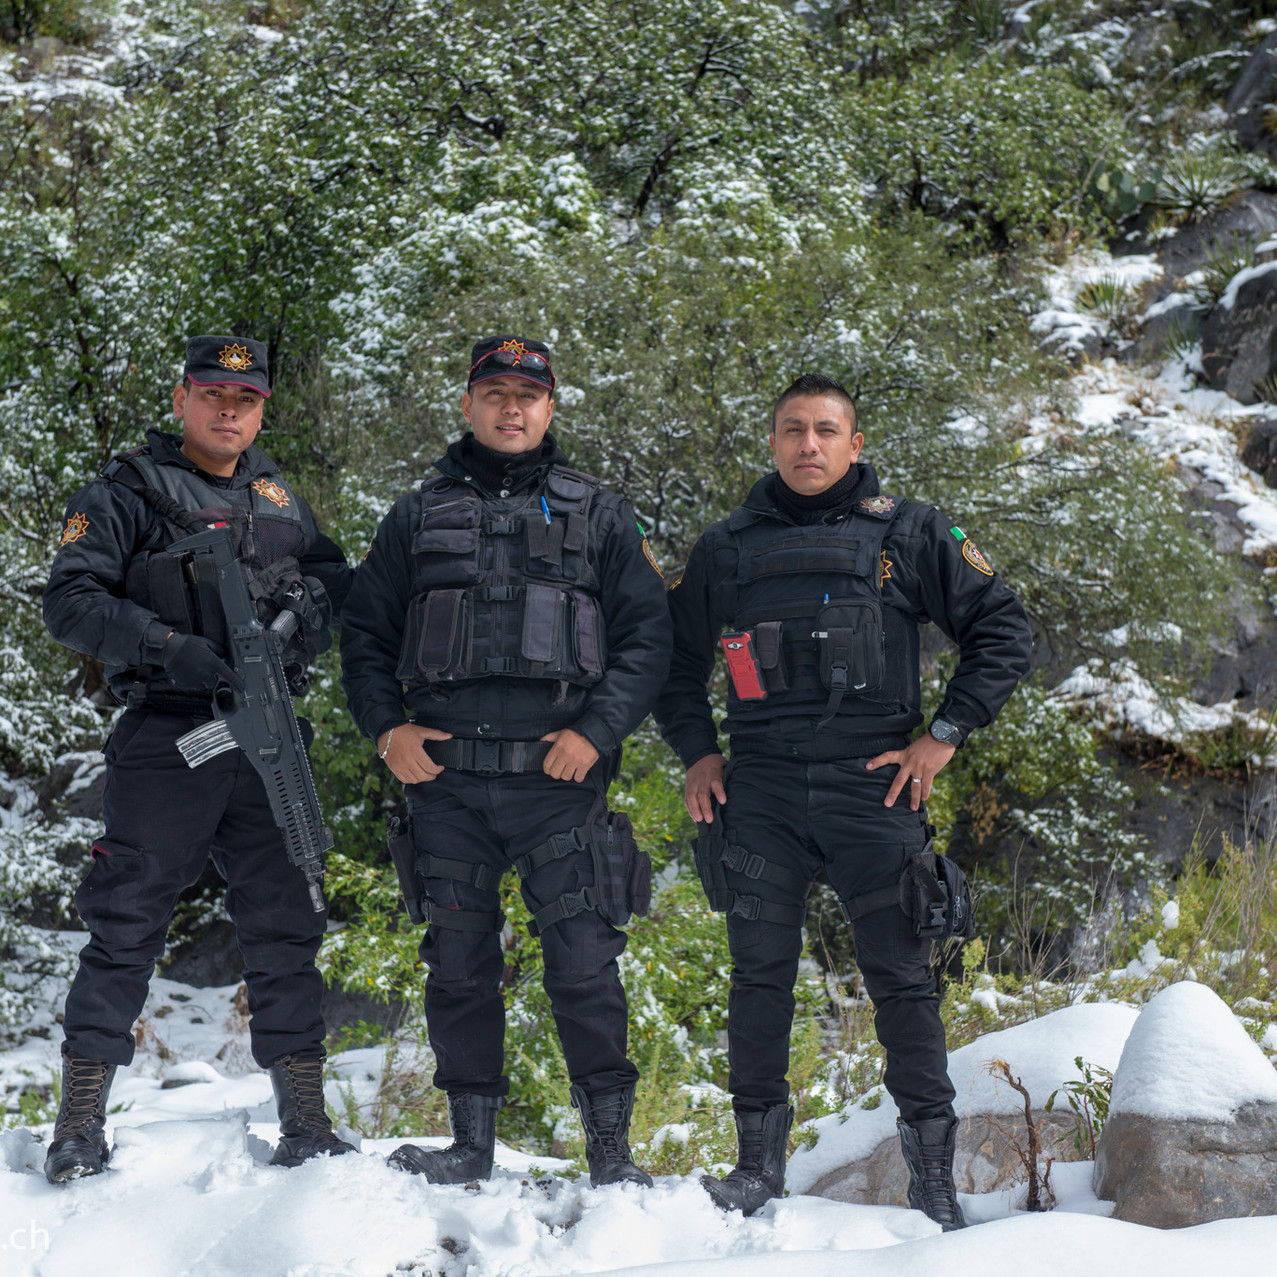 Federales in the snow